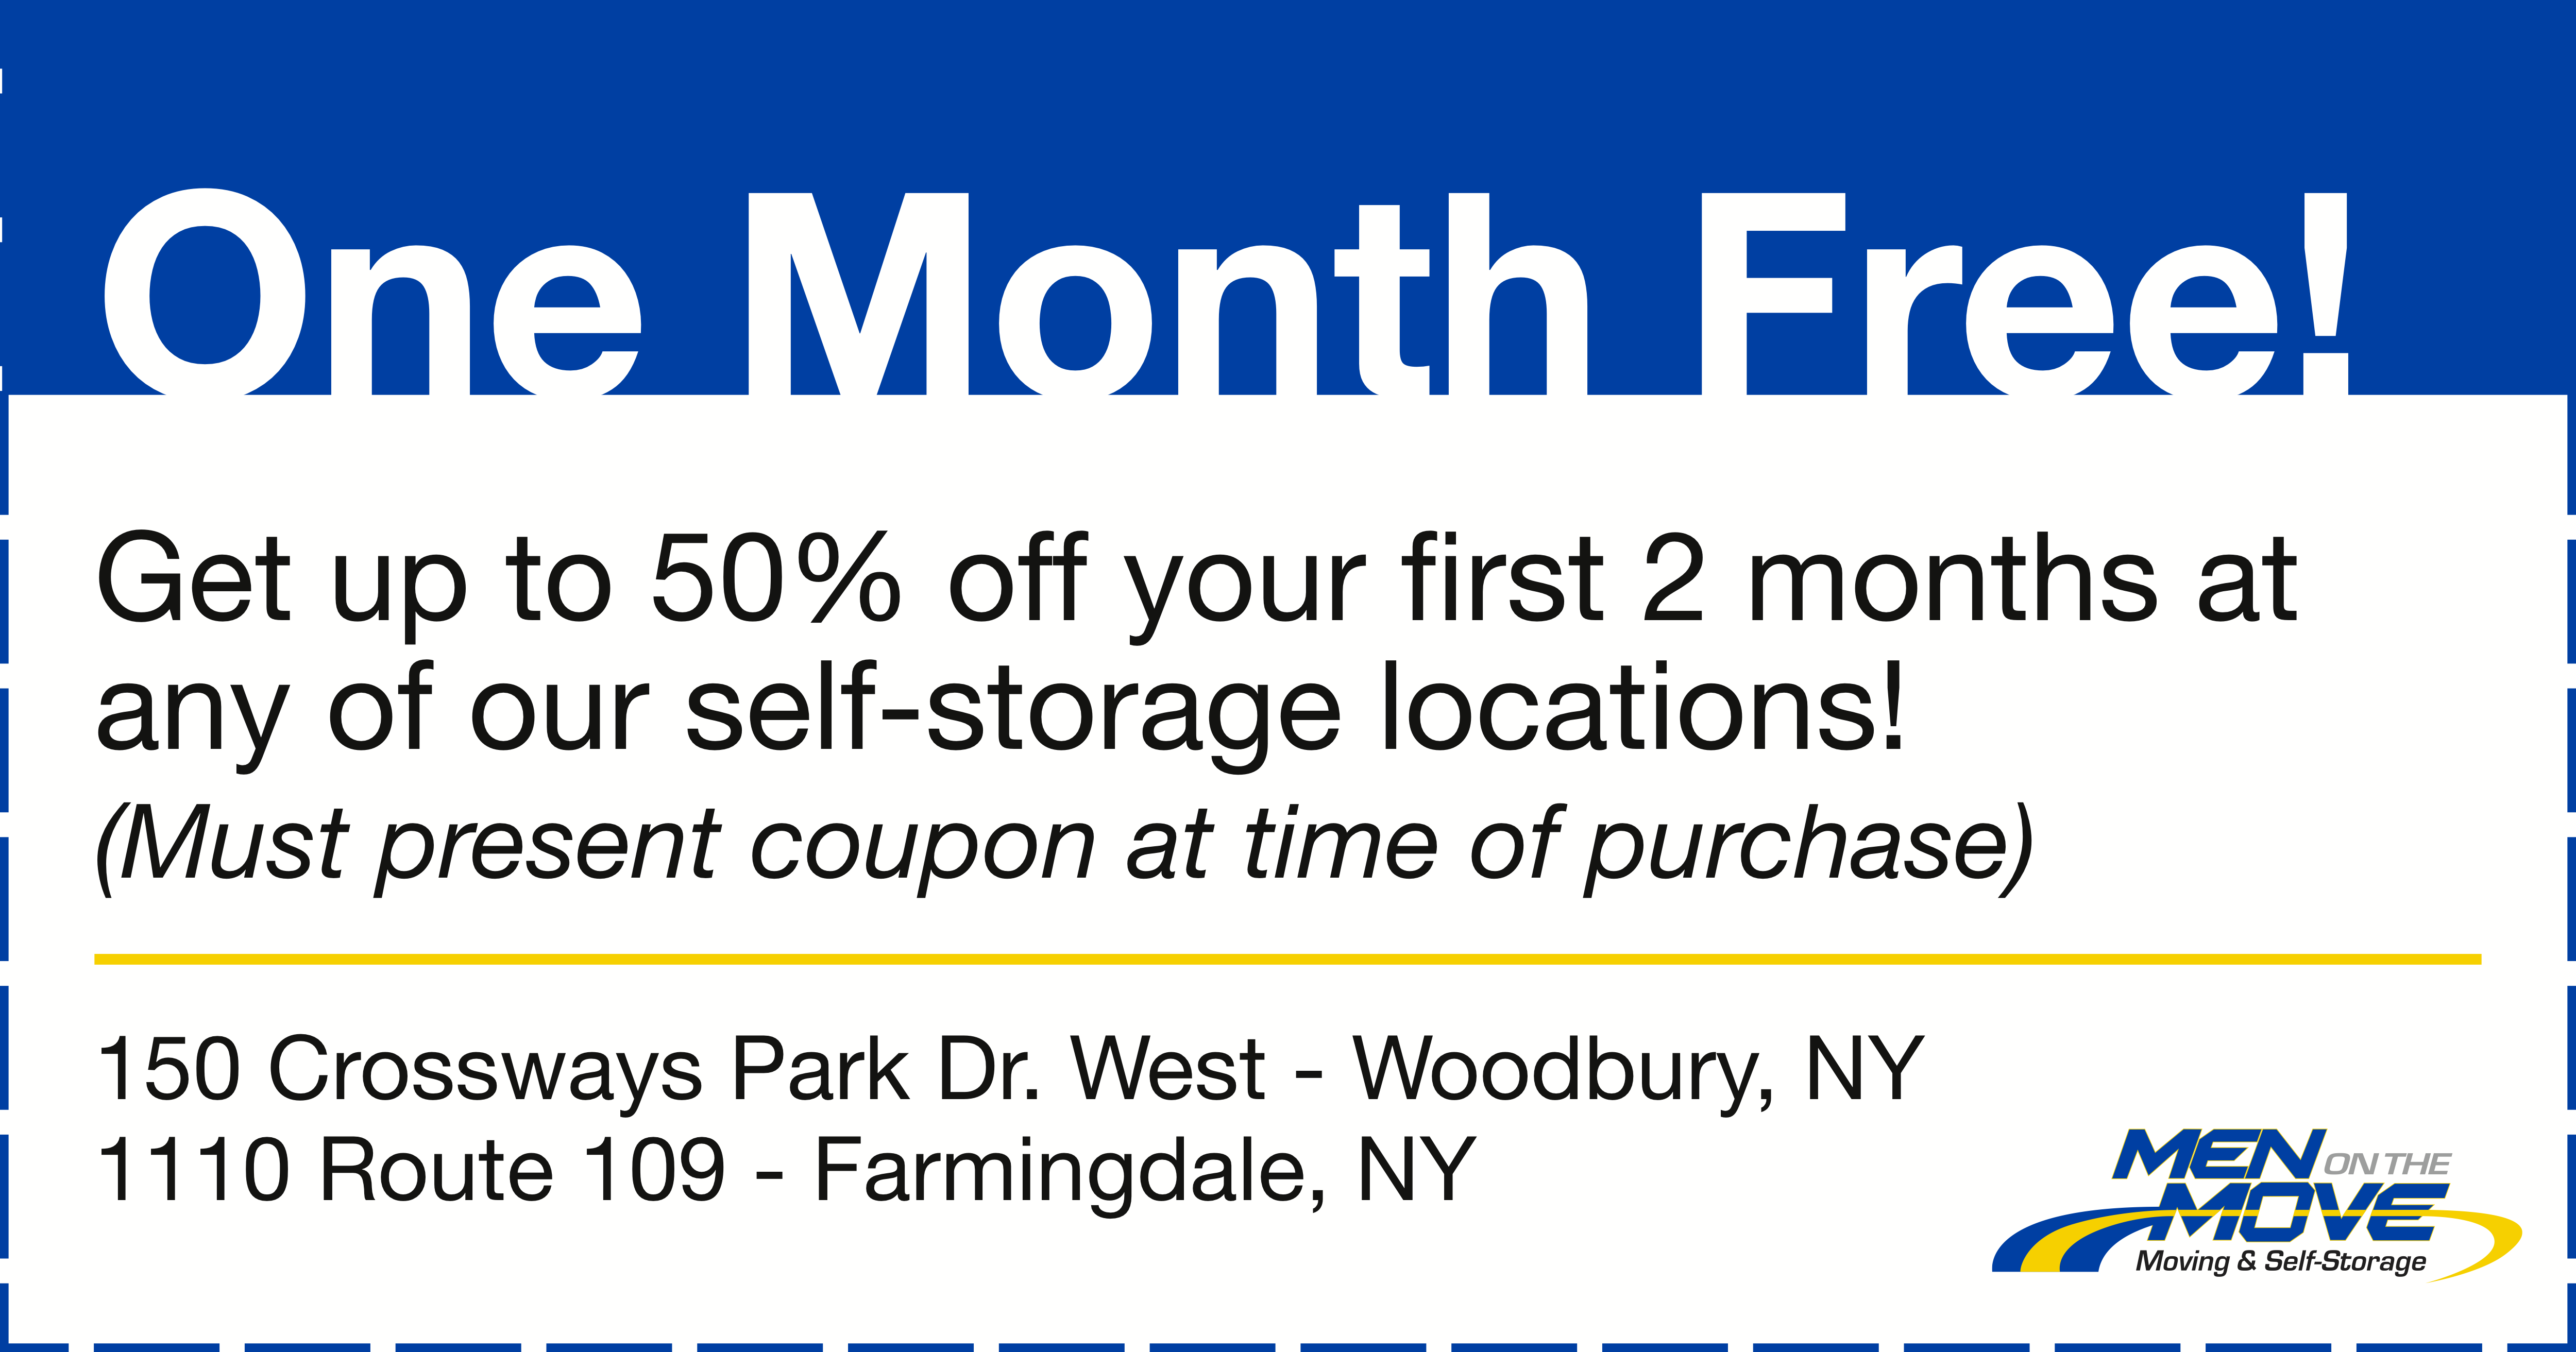 Long Island Self-Storage Company